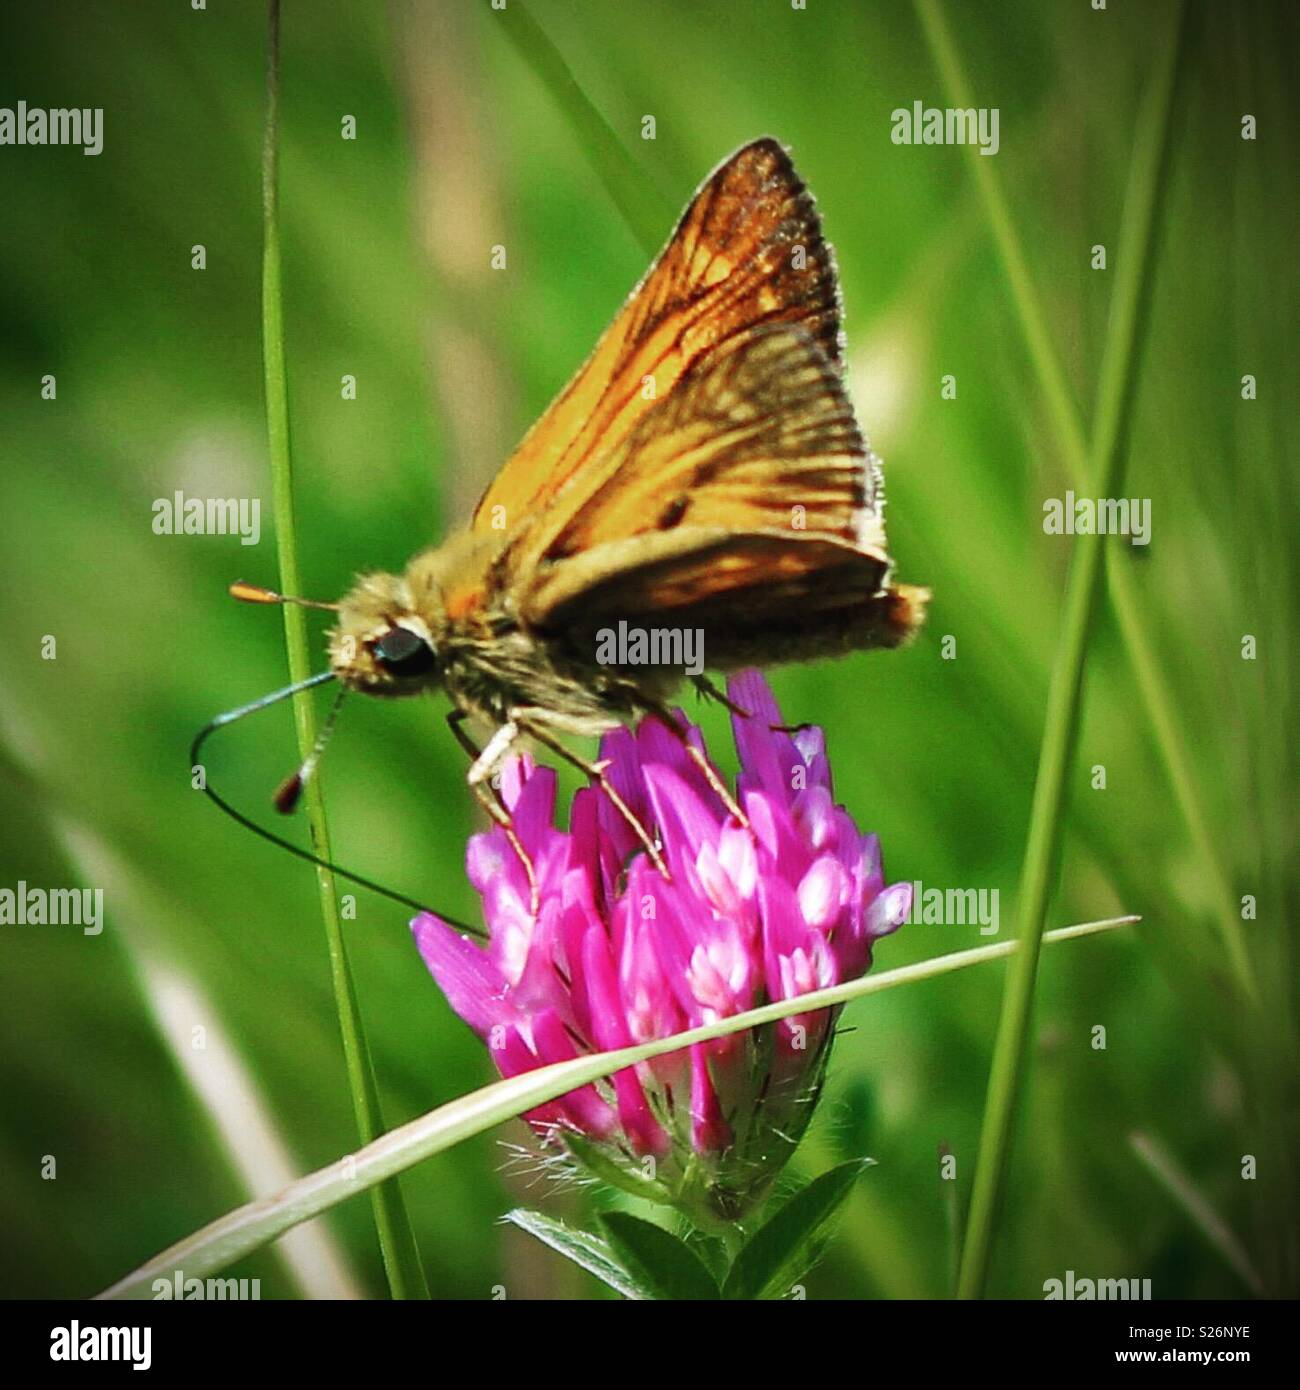 Thirst for nectar - Stock Image